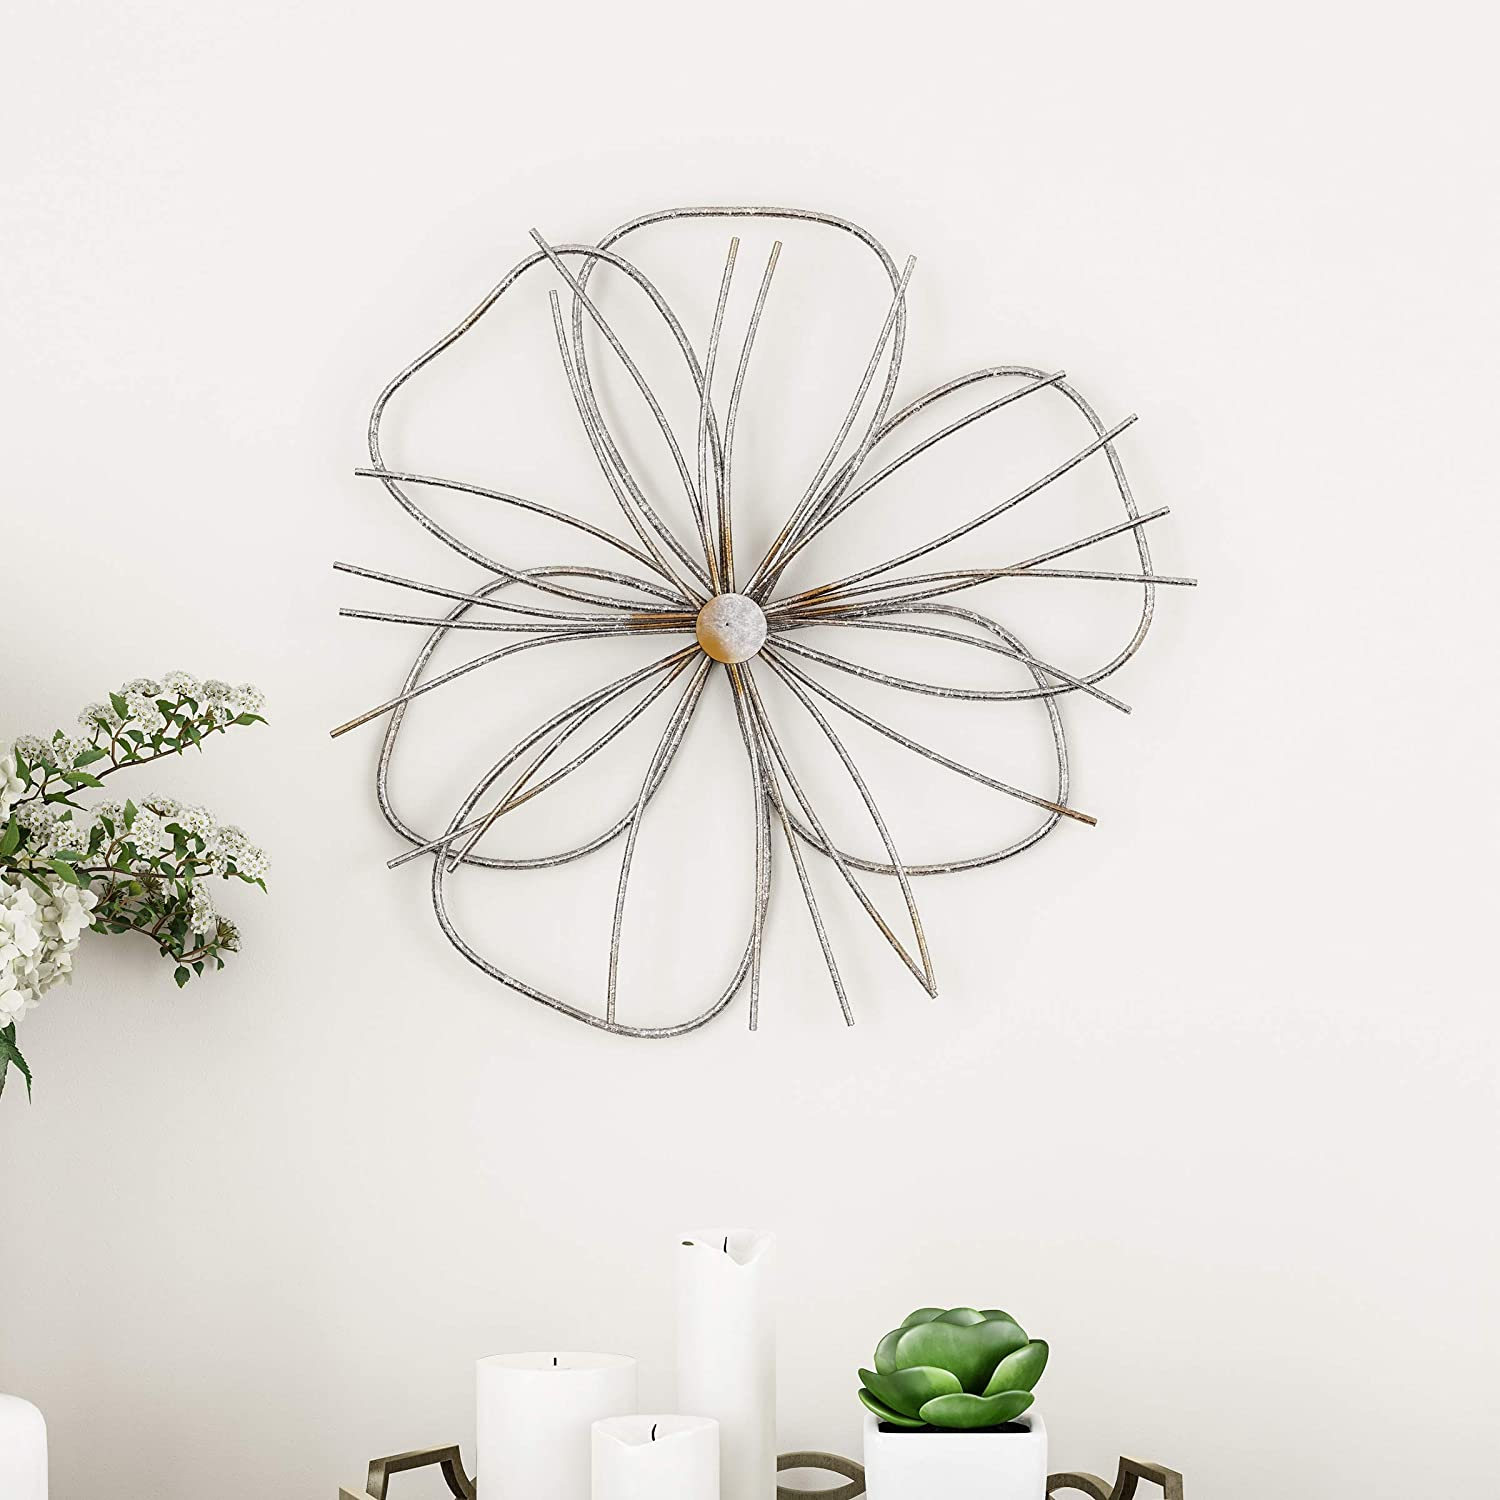 Lavish Home Wall Decor – Metallic Wire Layer Flower Sculpture Contemporary Hanging Accent Art for Living Room, Bedroom or Kitchen (Silver and Gold)